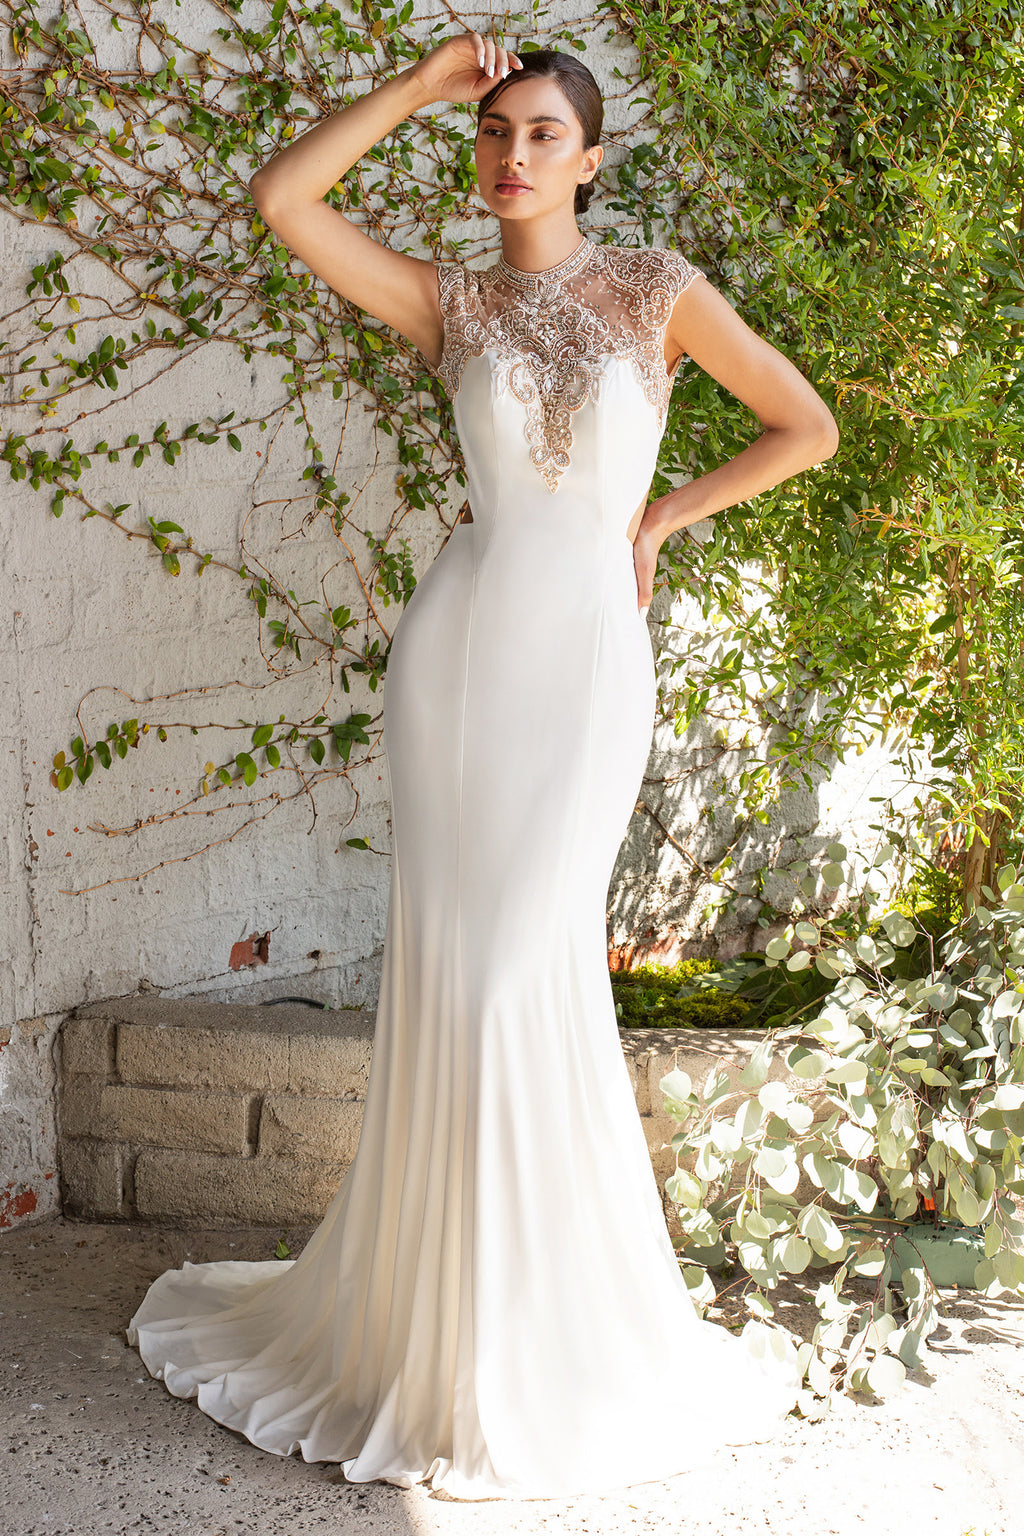 This gown shows off the beautiful curve of the back, as the embellishment frames the wearer and the back tail elongates her walk down the aisle.